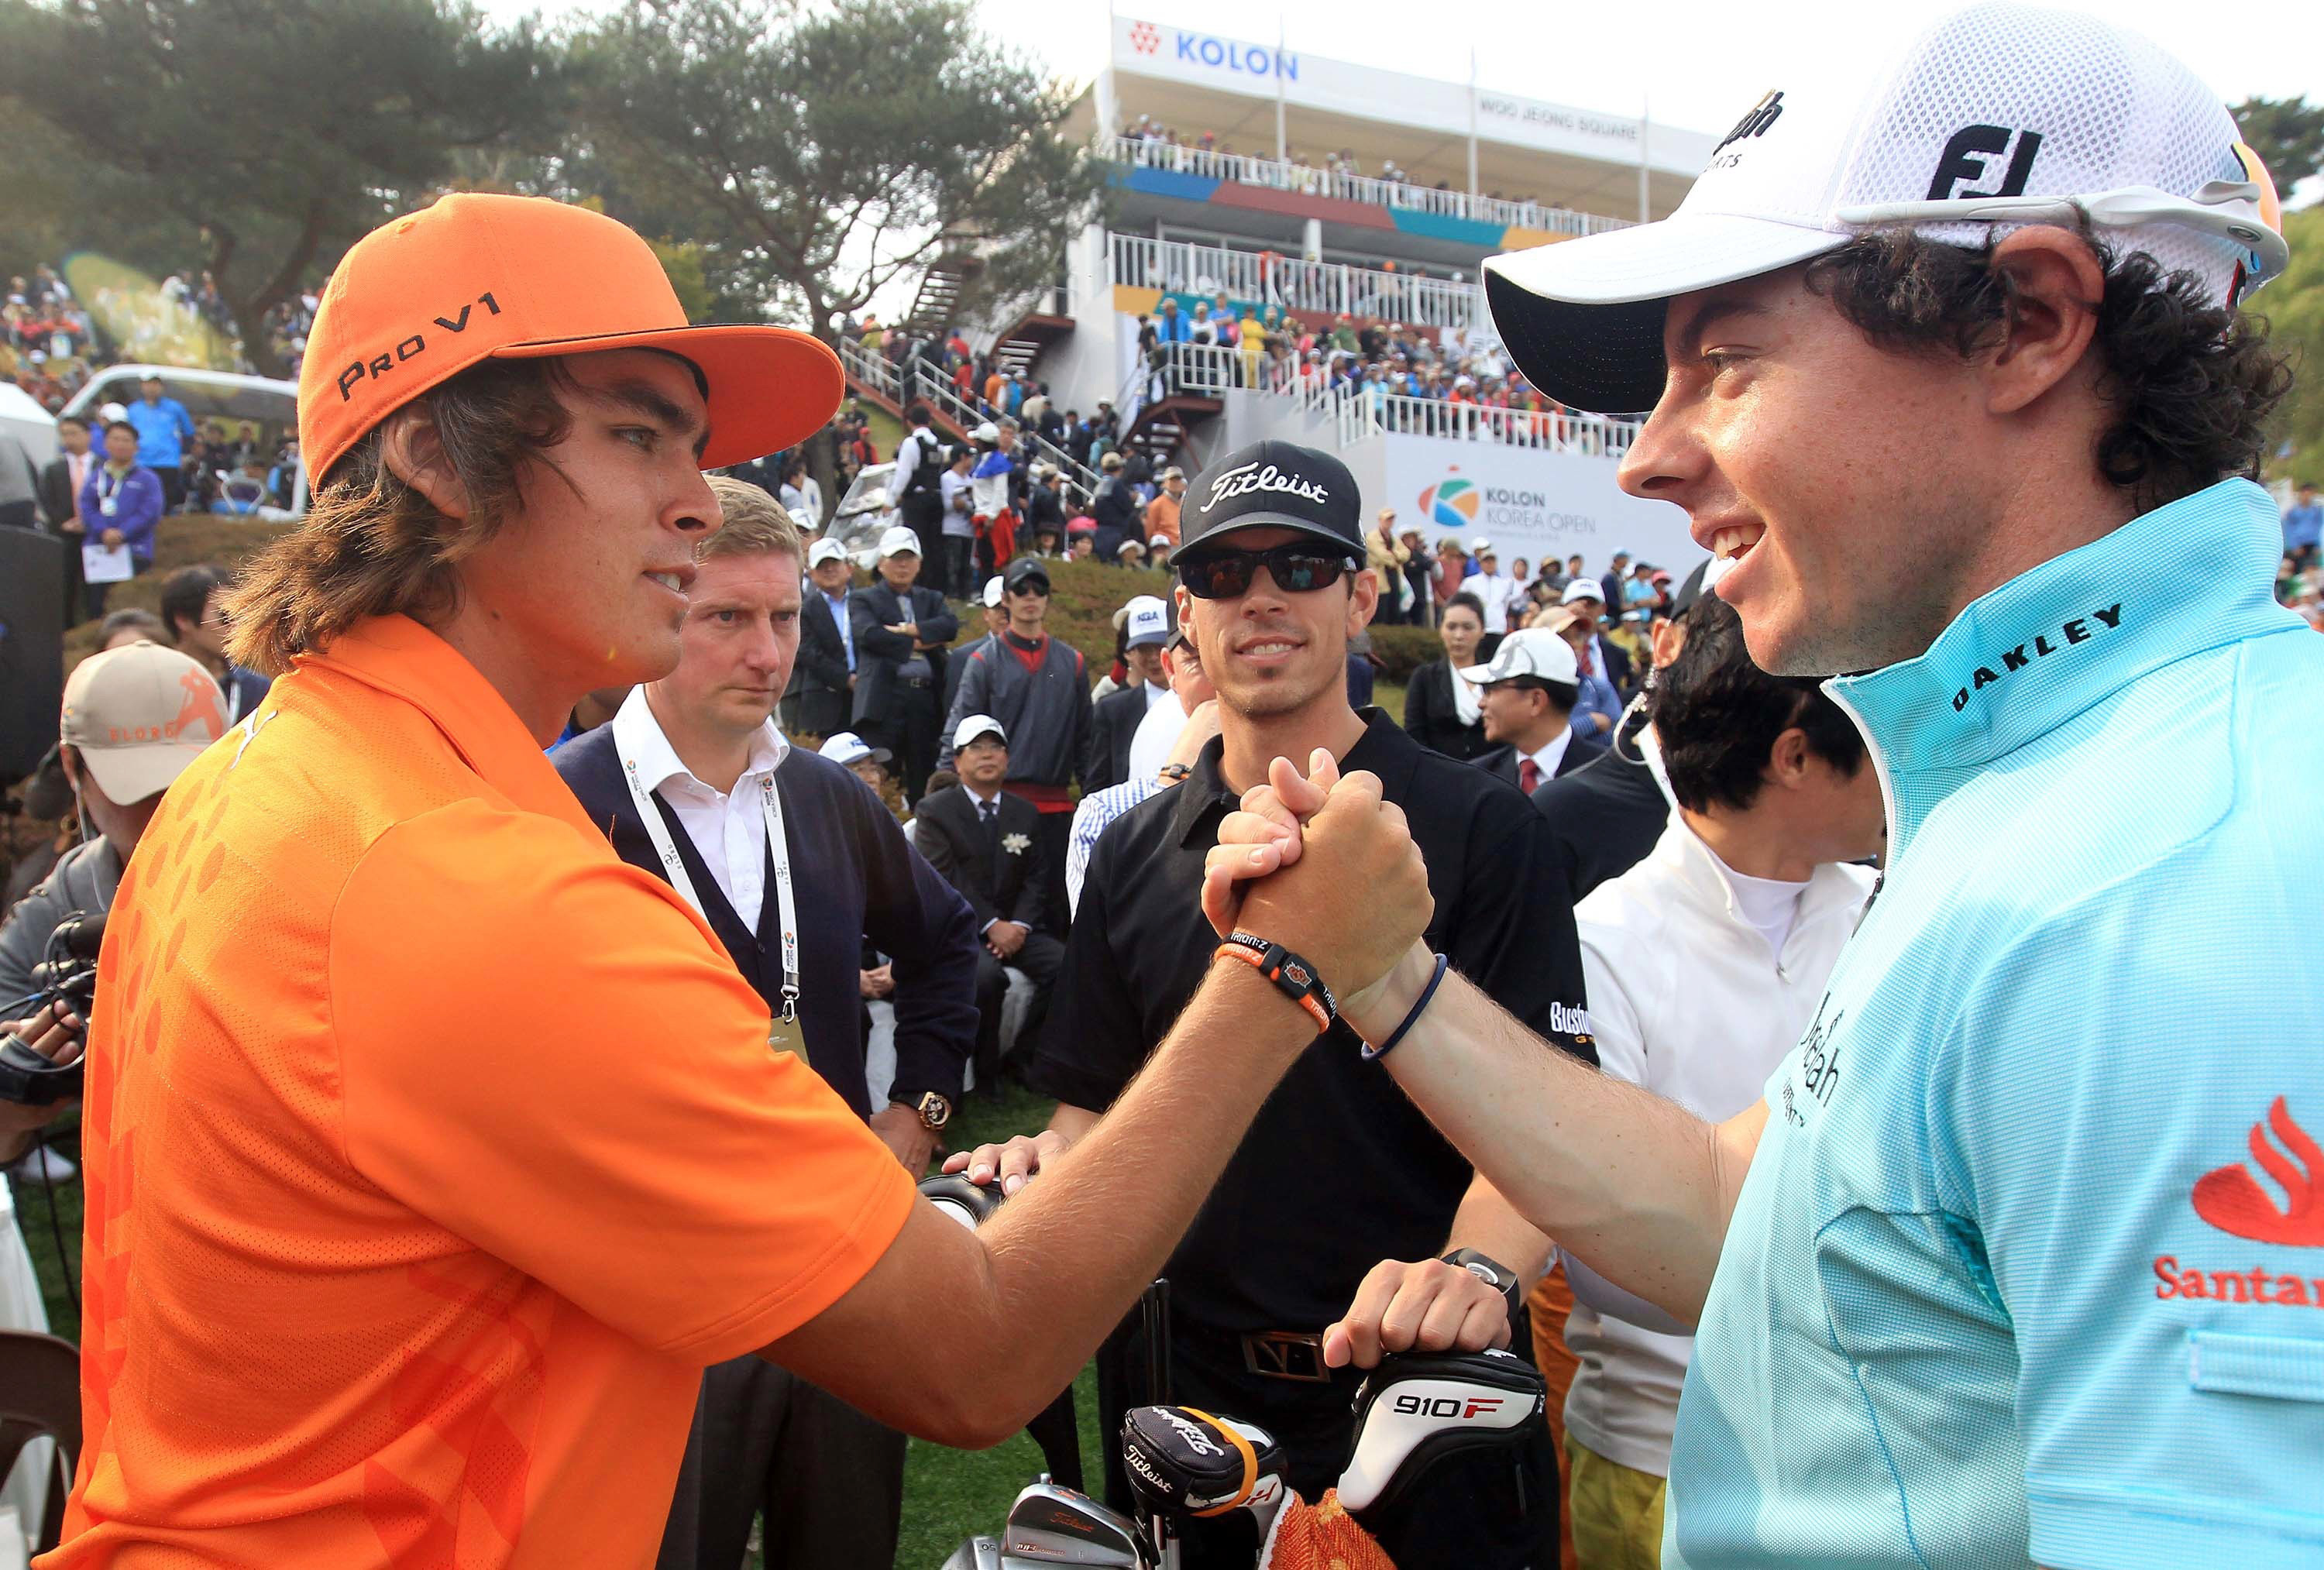 Rickie Fowler (left) receives congratulations from Rory McIlroy after winning the Korea Open. Fowler shot 16-under 268.